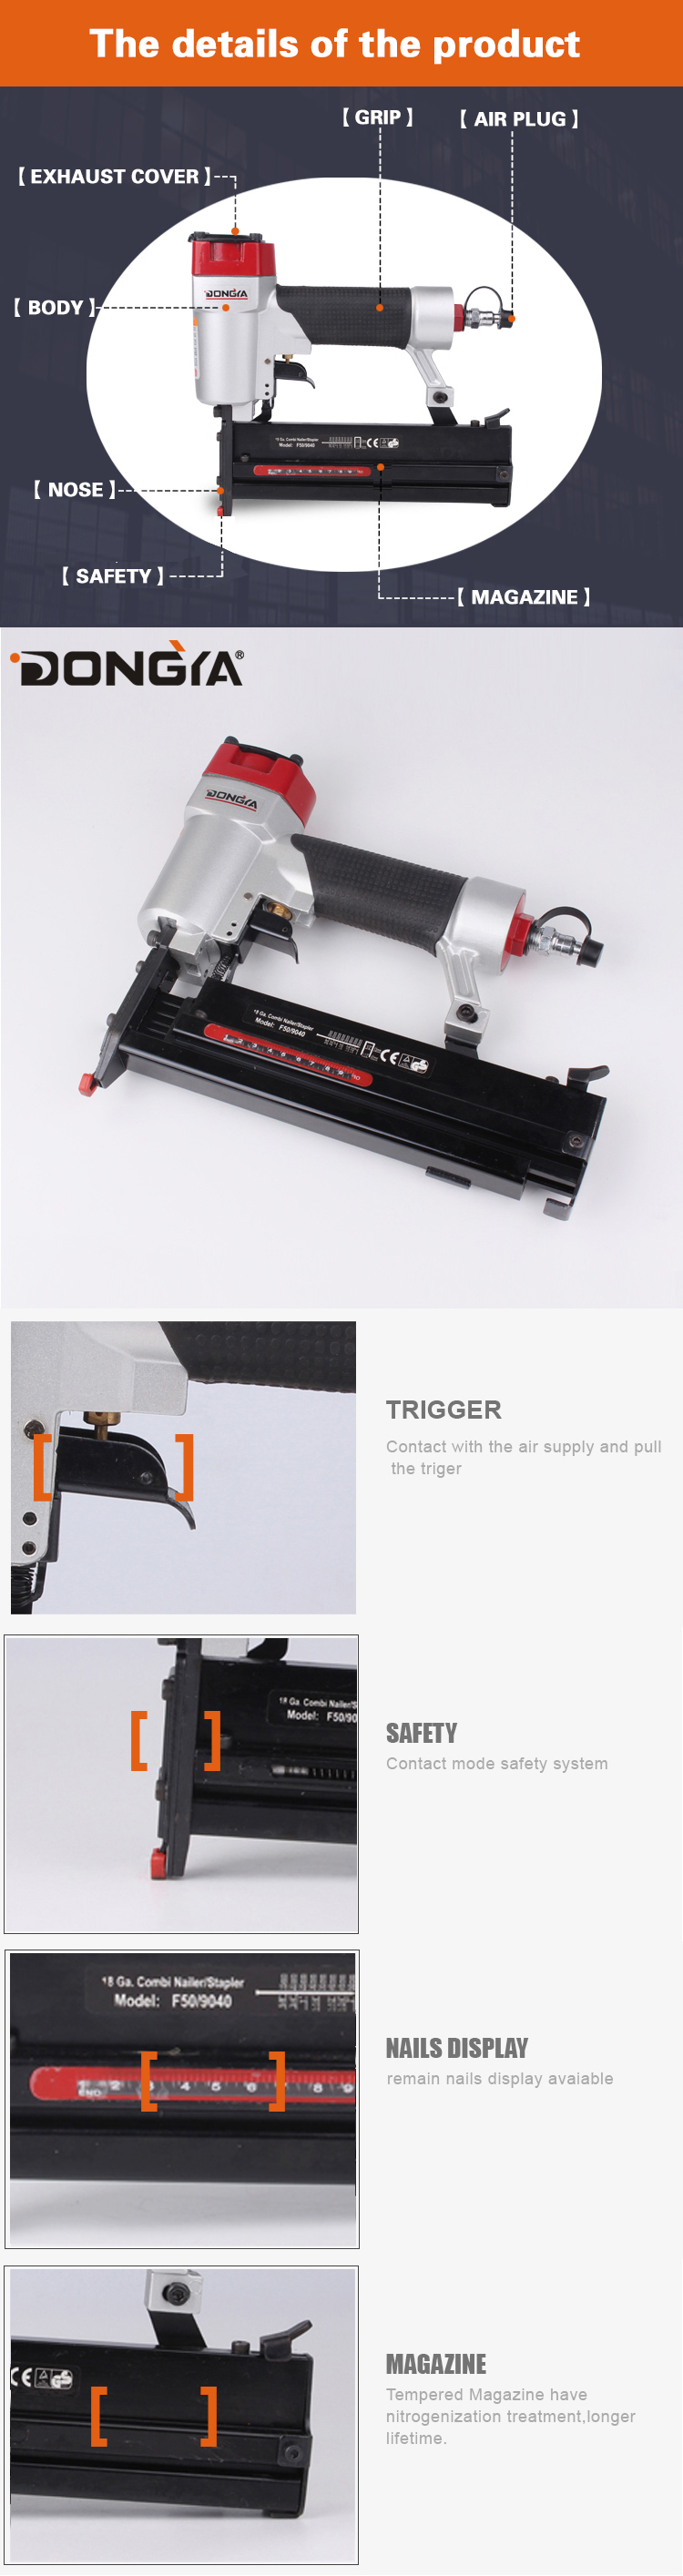 Dongya 18Ga 2 in 1 F5040 DIY Air Nailer and Stapler for Wood